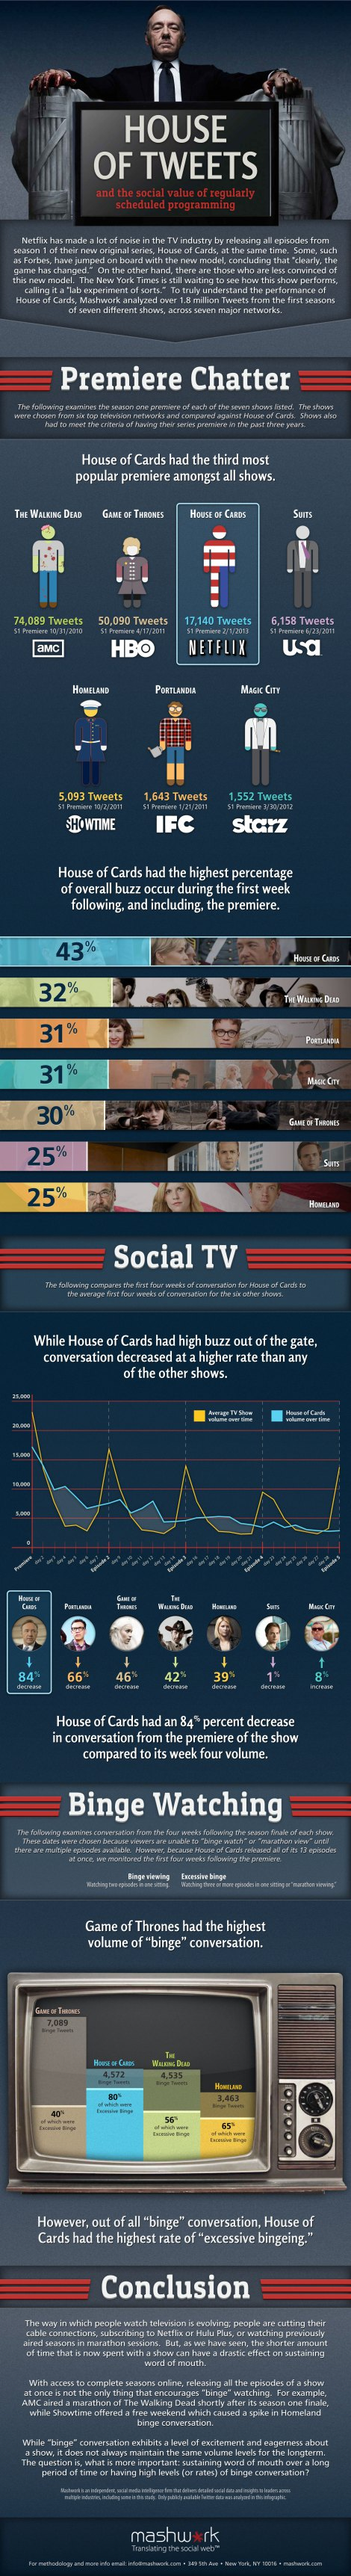 Netflix Blowing Up Social Buzz On TV [Infographic